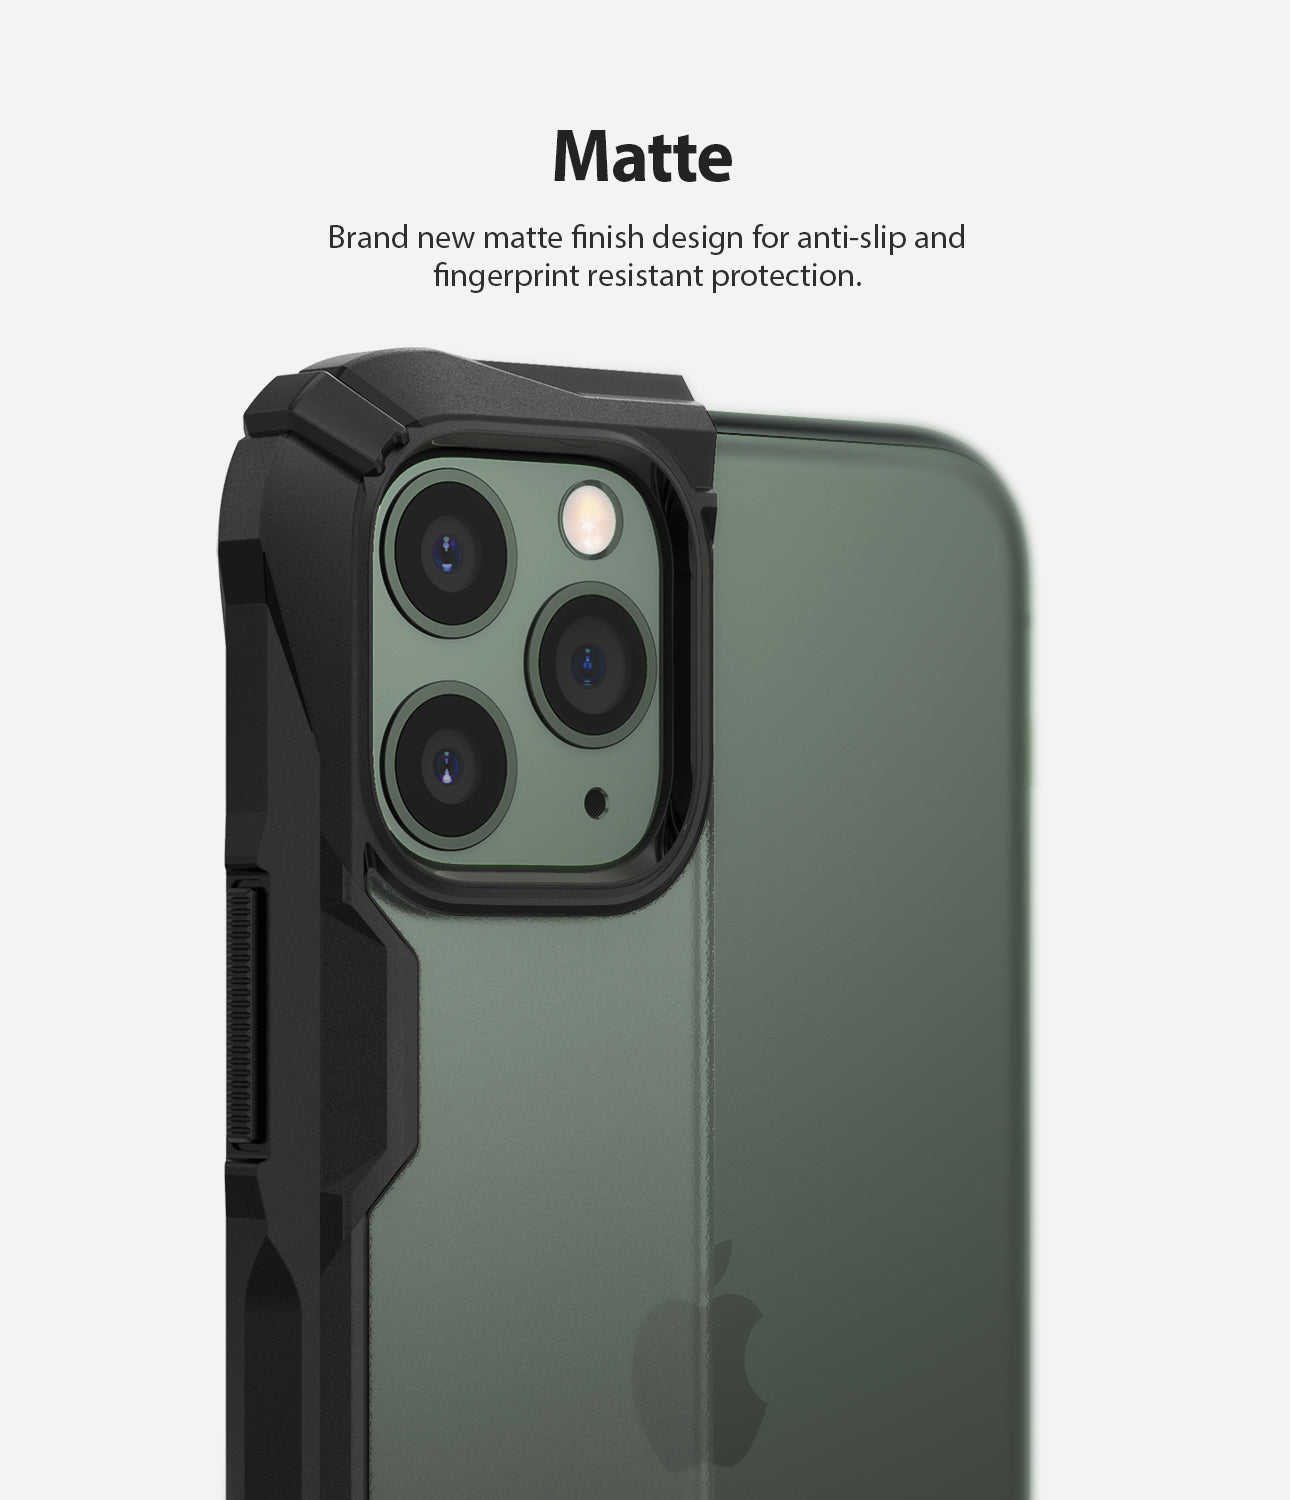 Ringke Fusion-X Matte Designed Case for iPhone 11 Pro Matte Dark Green